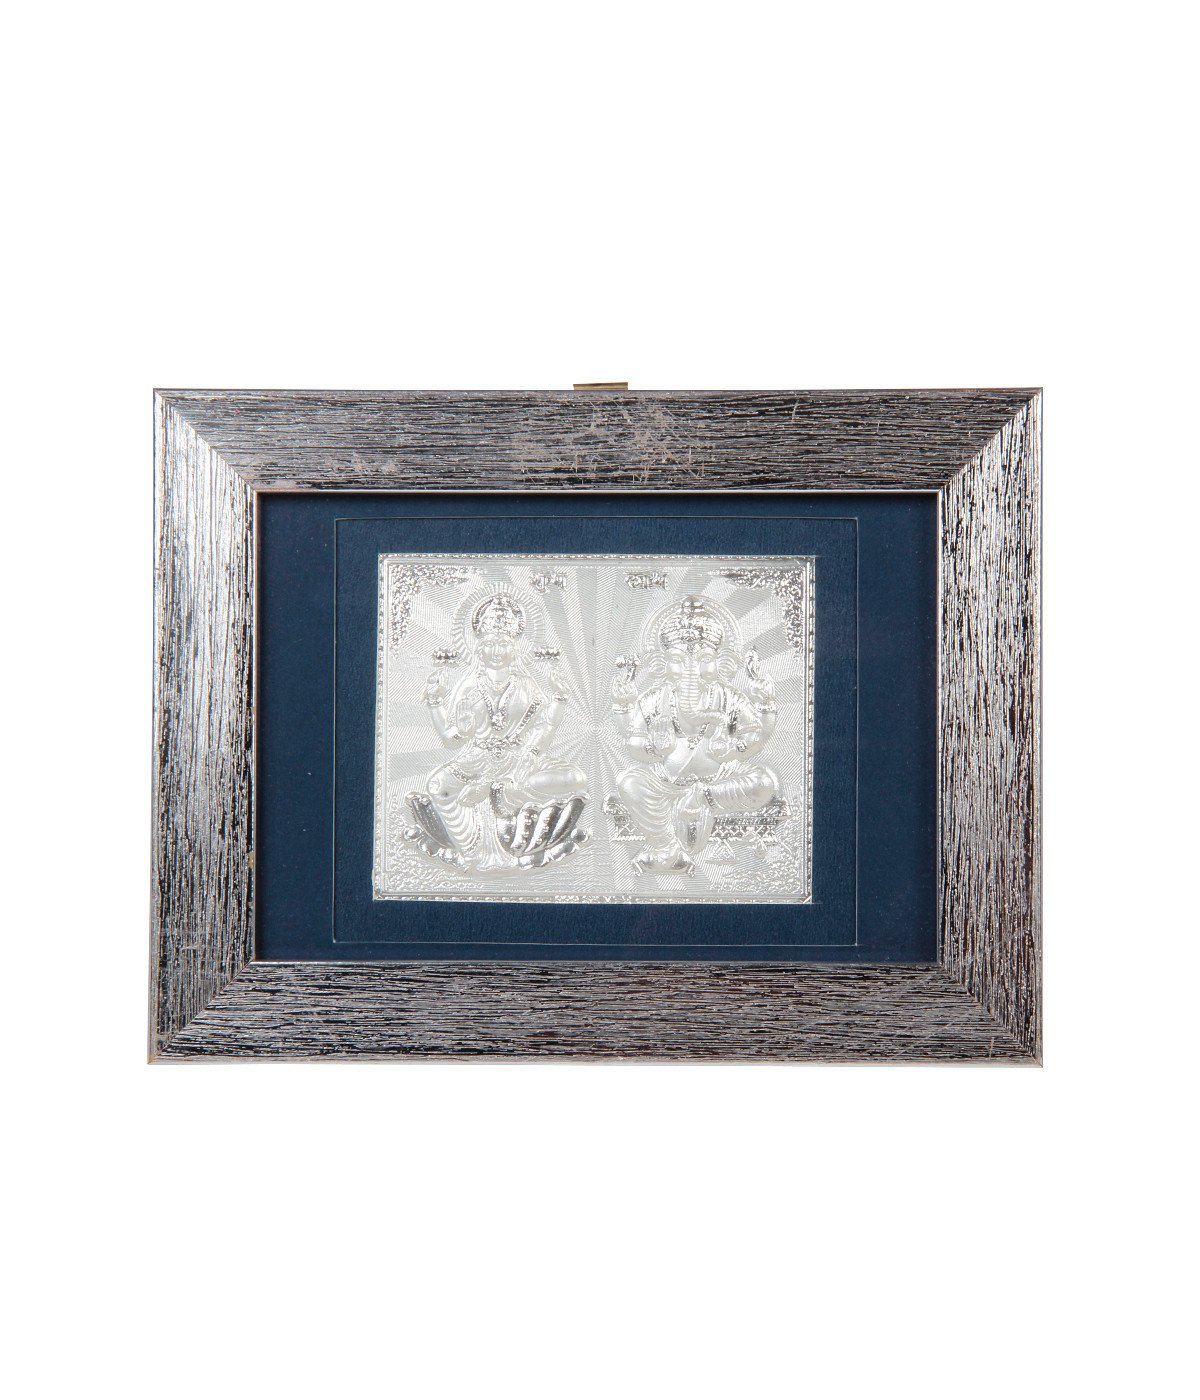 Jewel Fuel 999 Pure Silver Lakshmi Ganesha Frame | Jewel Fuel